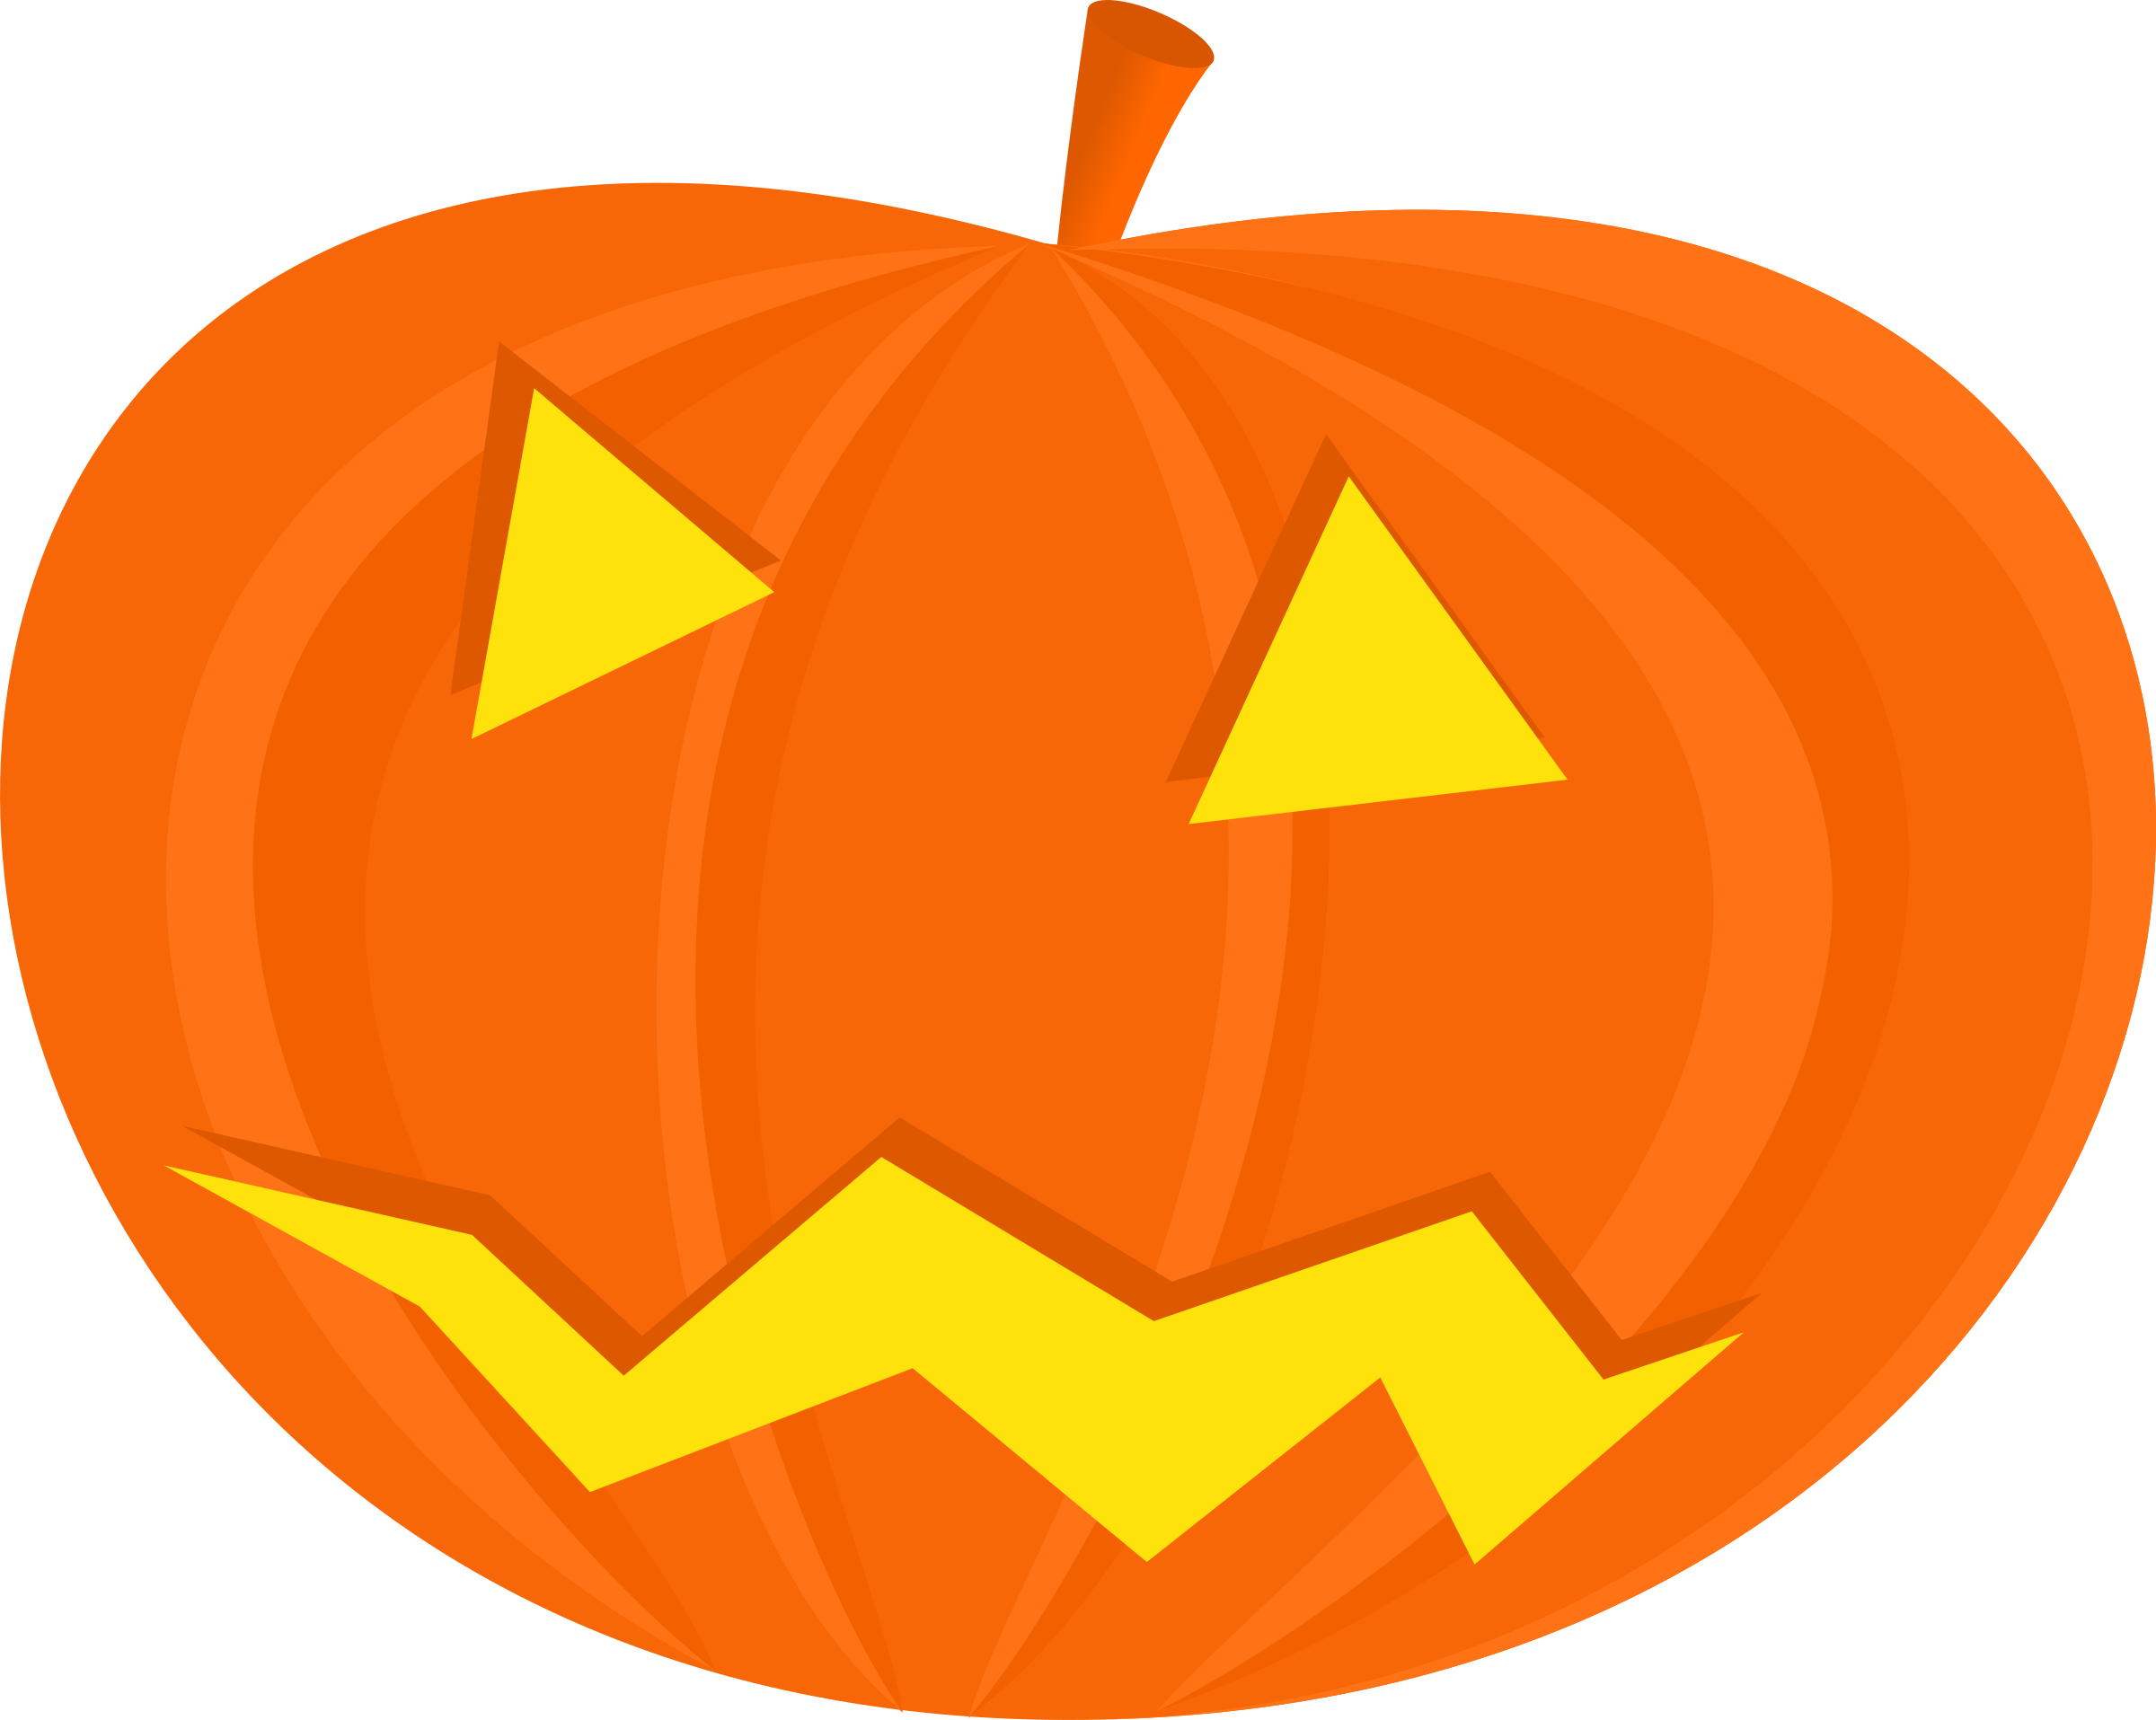 Pumpkin faces clipart vector freeuse Clipart - halloween pumpkins vector freeuse